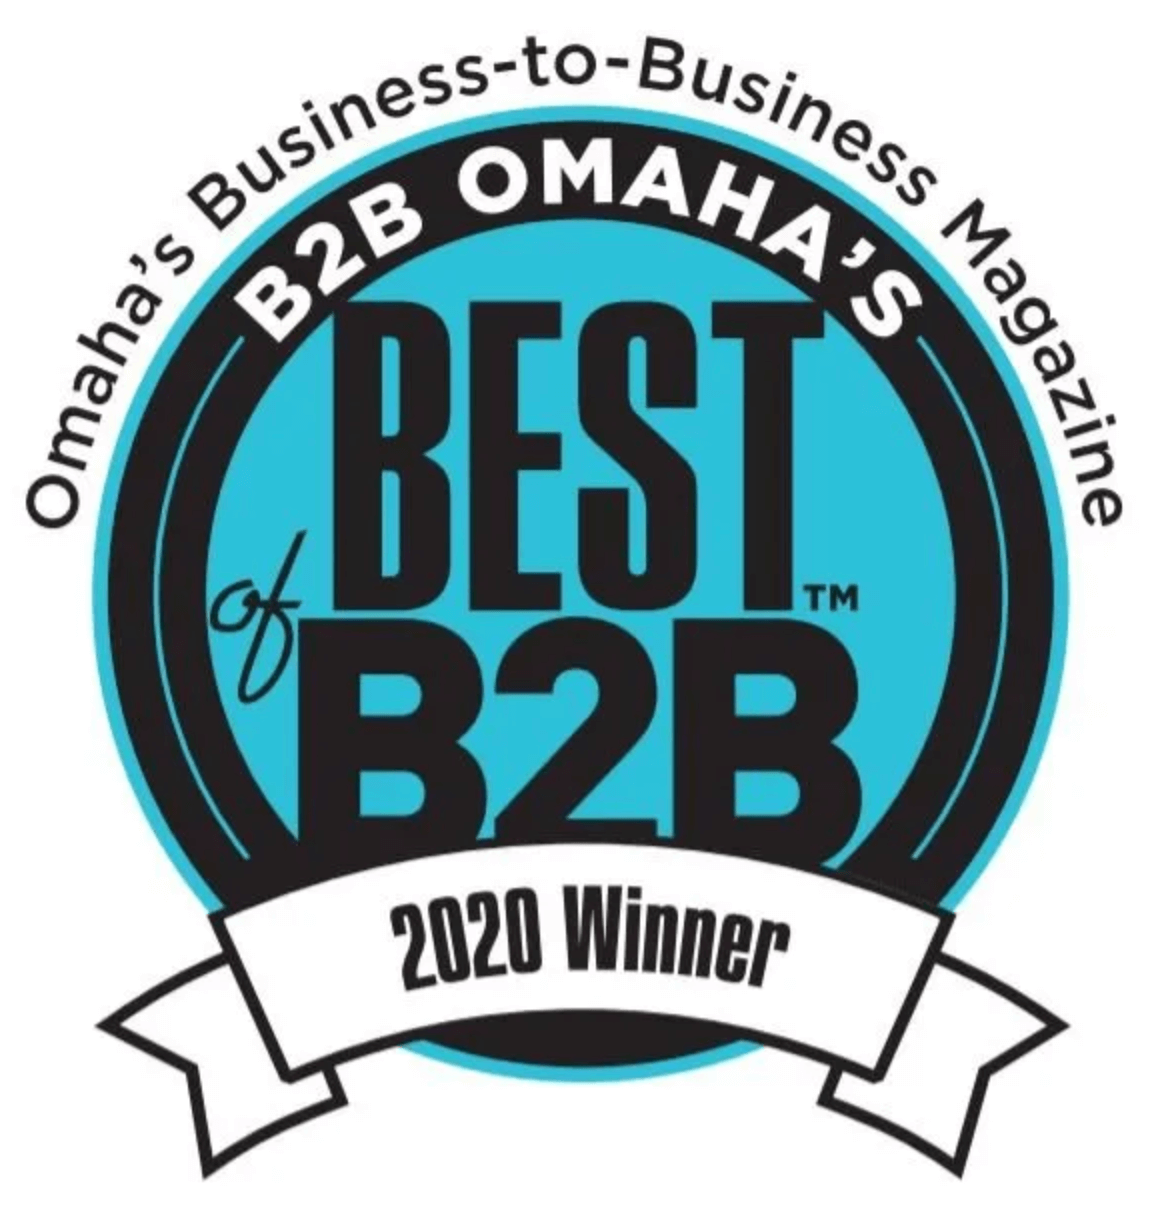 2020 omaha's best of business to business award winner